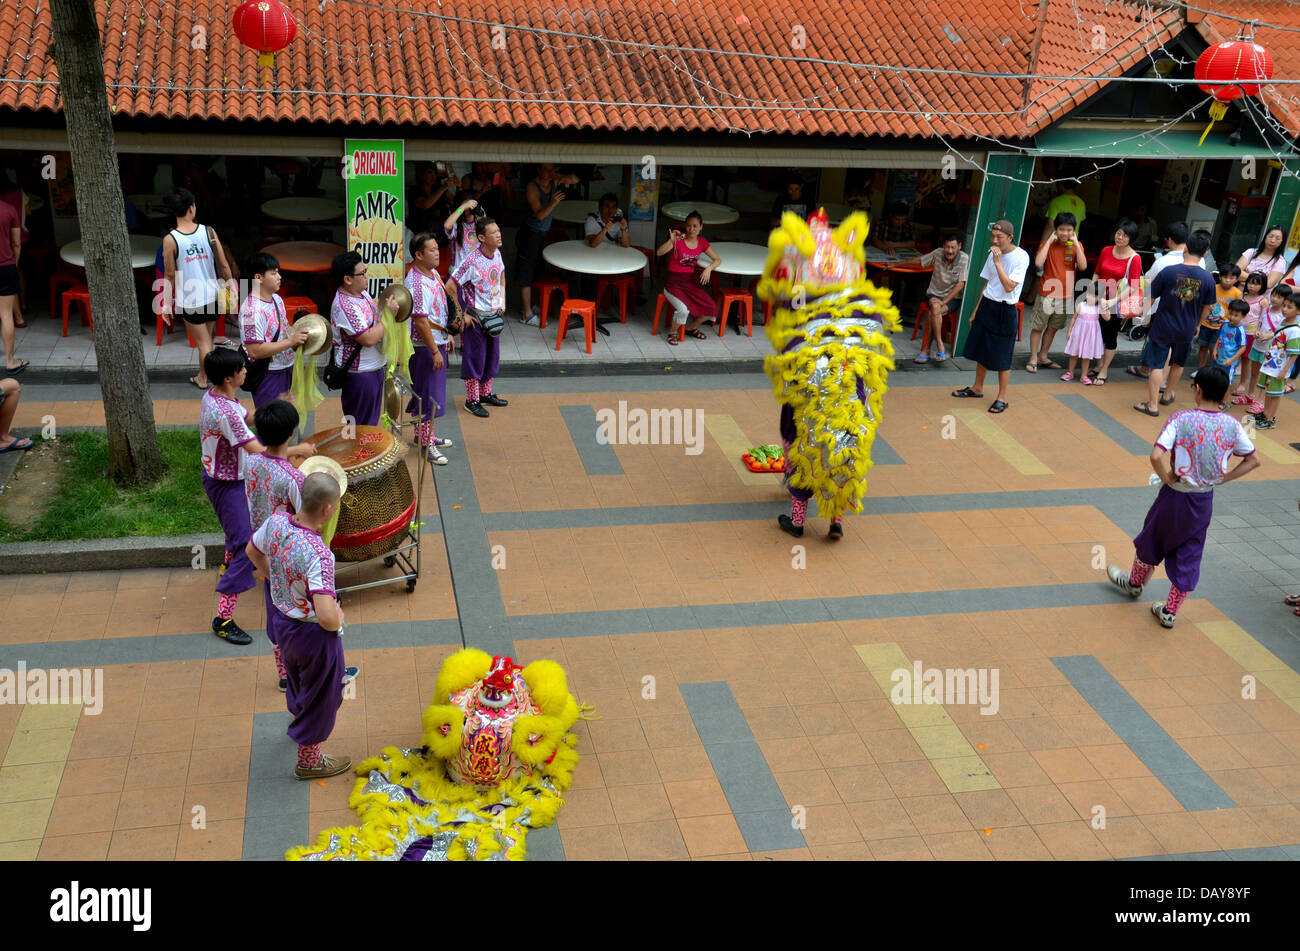 Dance troupe performs Chinese lion dance, Singapore - Stock Image